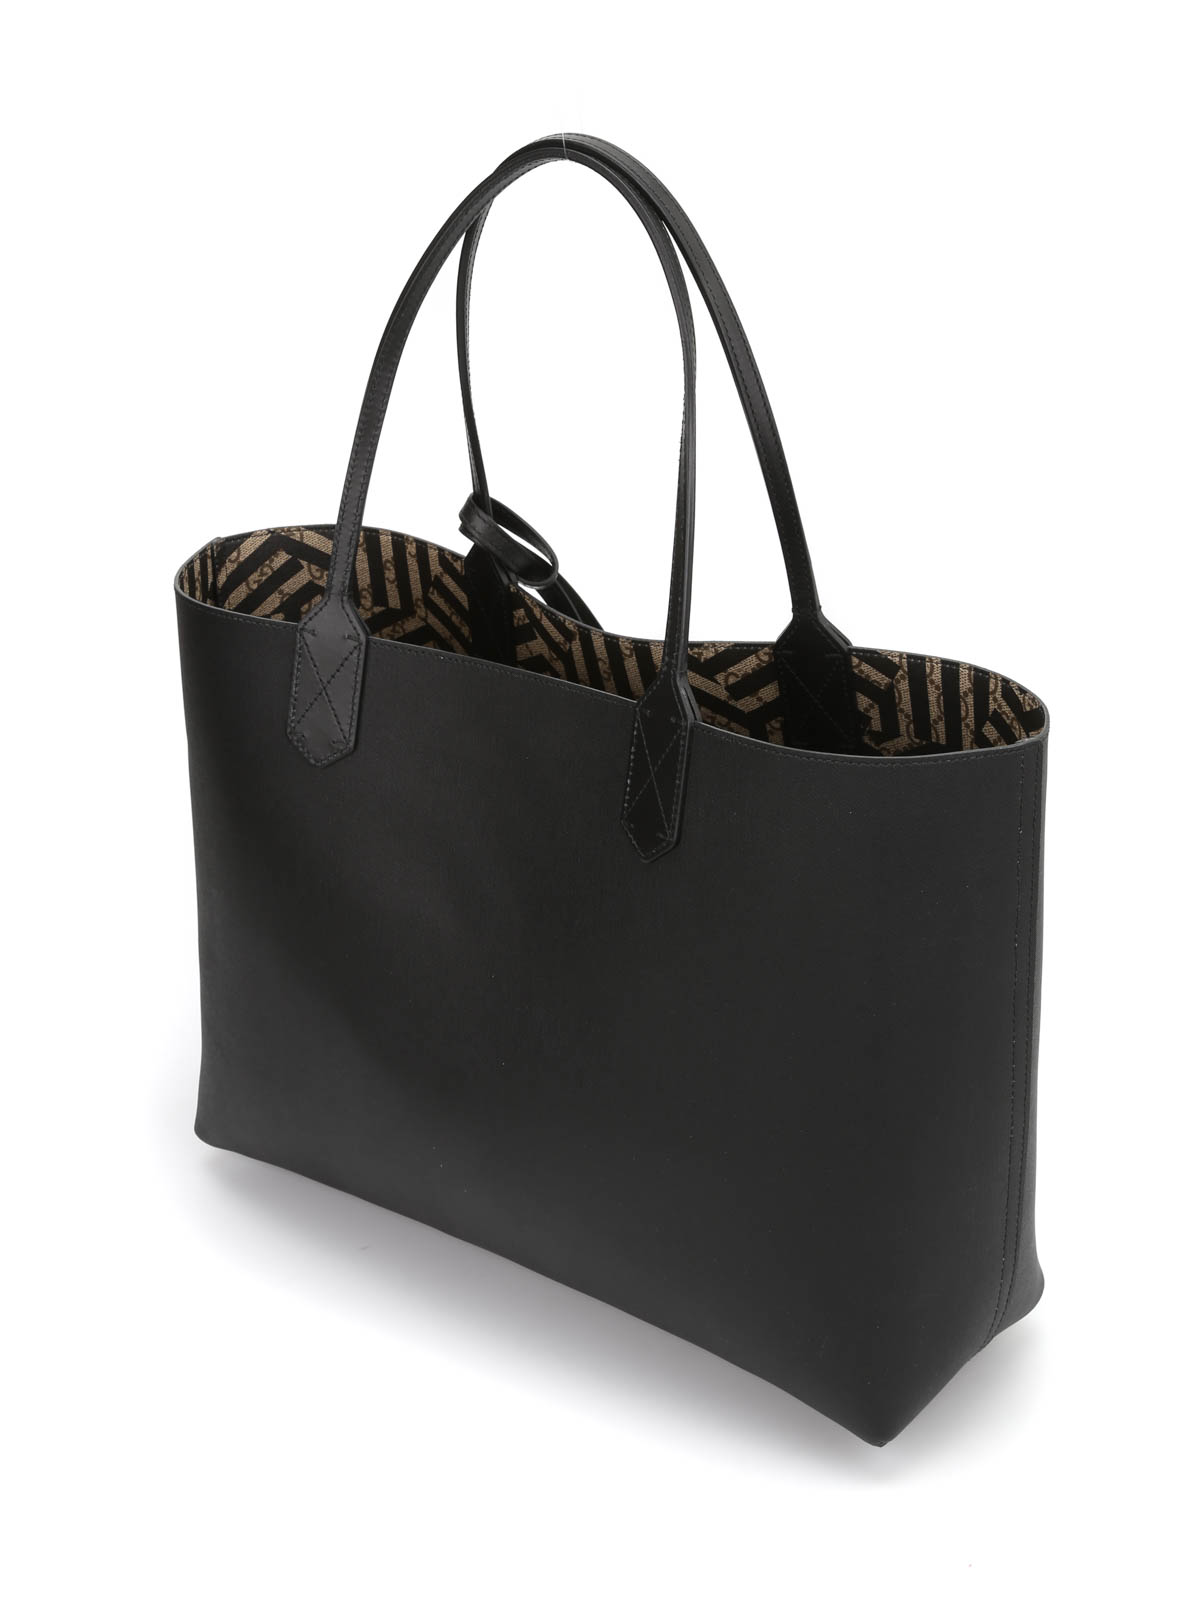 e8254a52ca8a11 Gucci - Reversible GG Caleido leather tote - totes bags ...